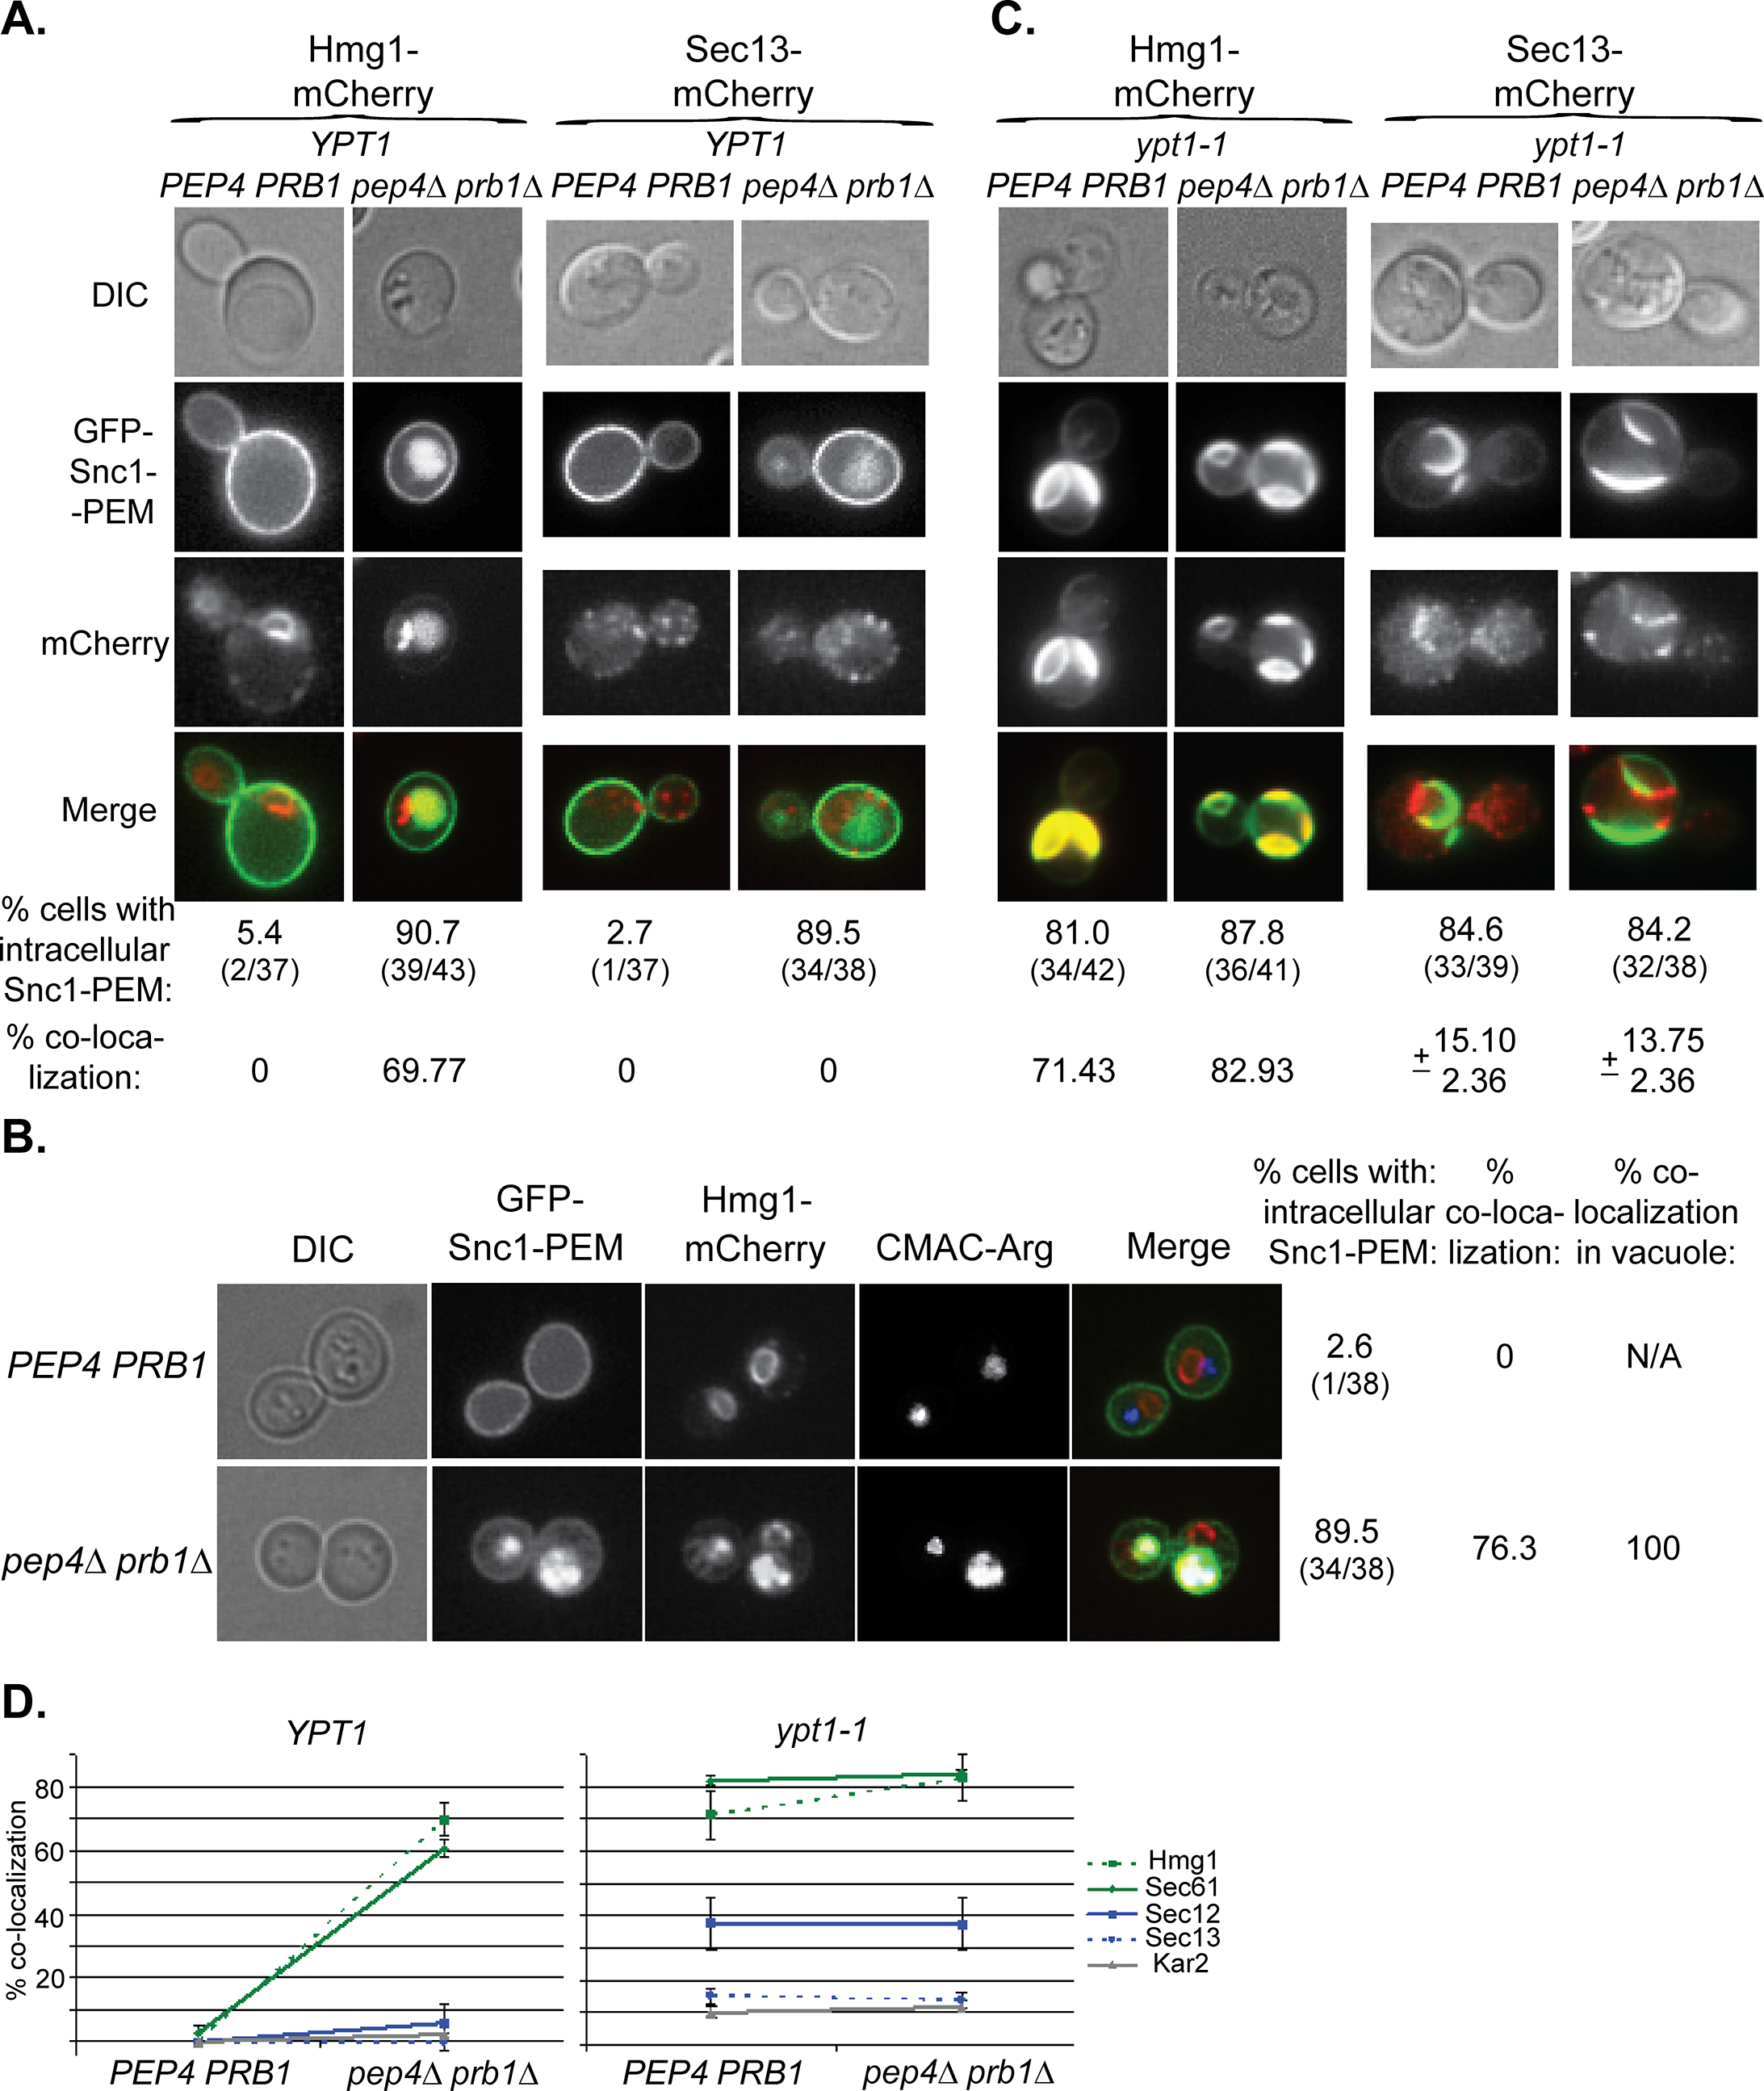 Live-cell microscopy analysis of ER-resident proteins upon overexpression of GFP-Snc1-PEM.